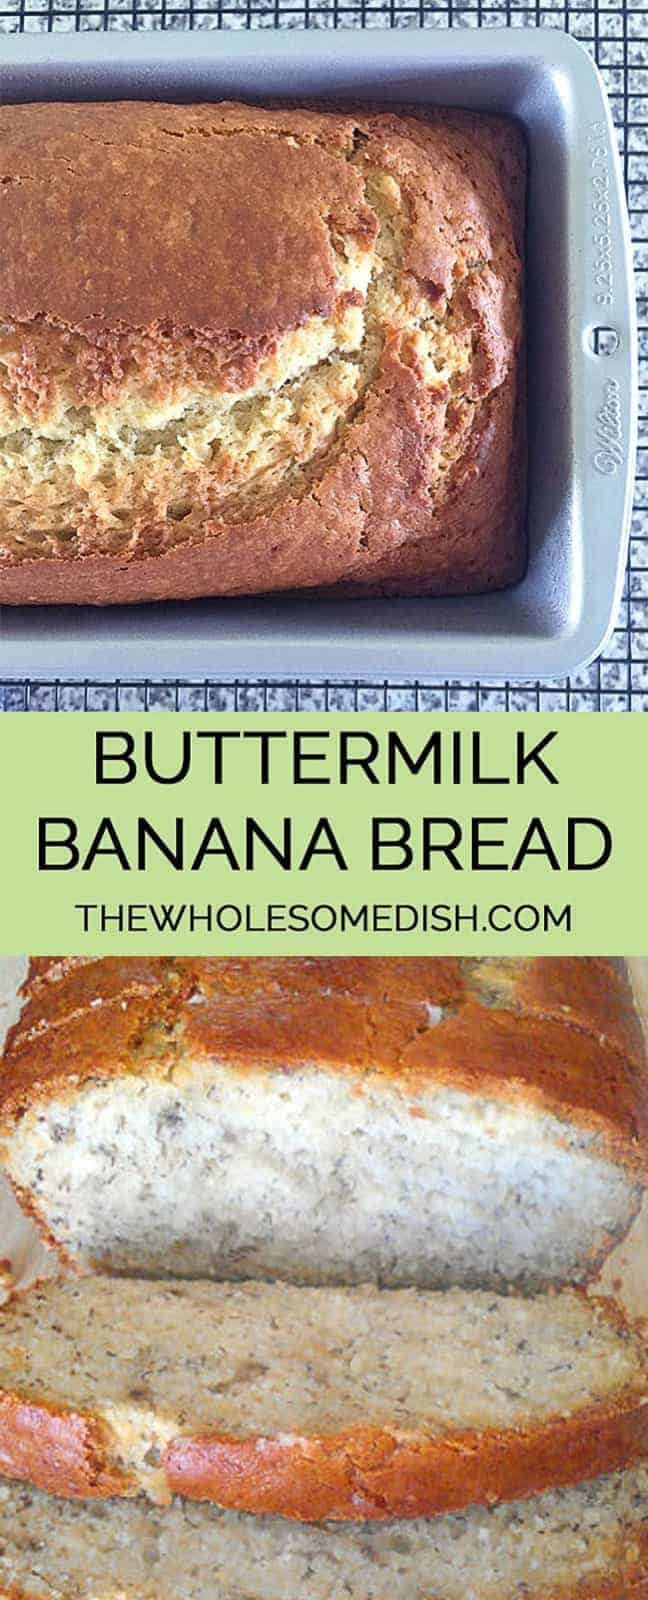 Buttermilk Banana Bread - This is the best banana bread recipe ever! This is an easy recipe and the bread is so moist and delicious. #buttermilk #banana #bread #bananabread #breakfast #brunch #snack #baking #recipe #bananas